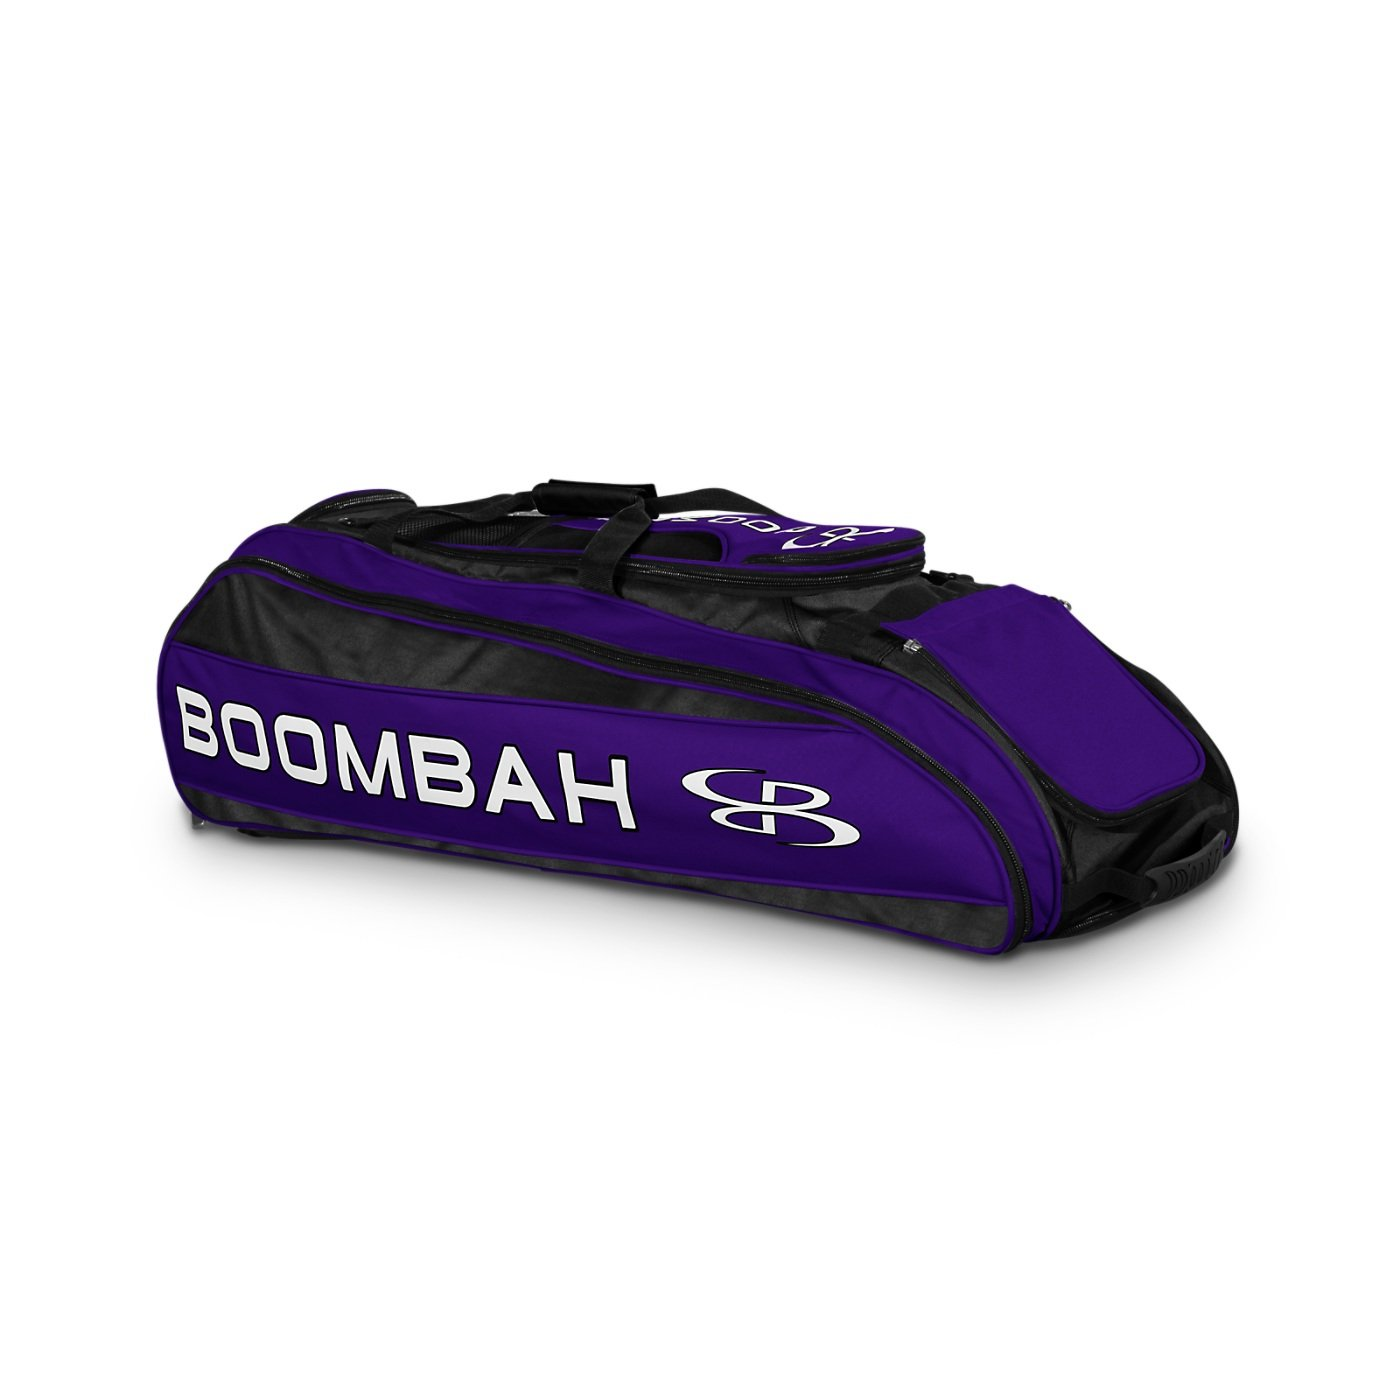 Boombah Beast Baseball/Softball Bat Bag - 40'' x 14'' x 13'' - Black/Purple - Holds 8 Bats, Glove & Shoe Compartments by Boombah (Image #1)